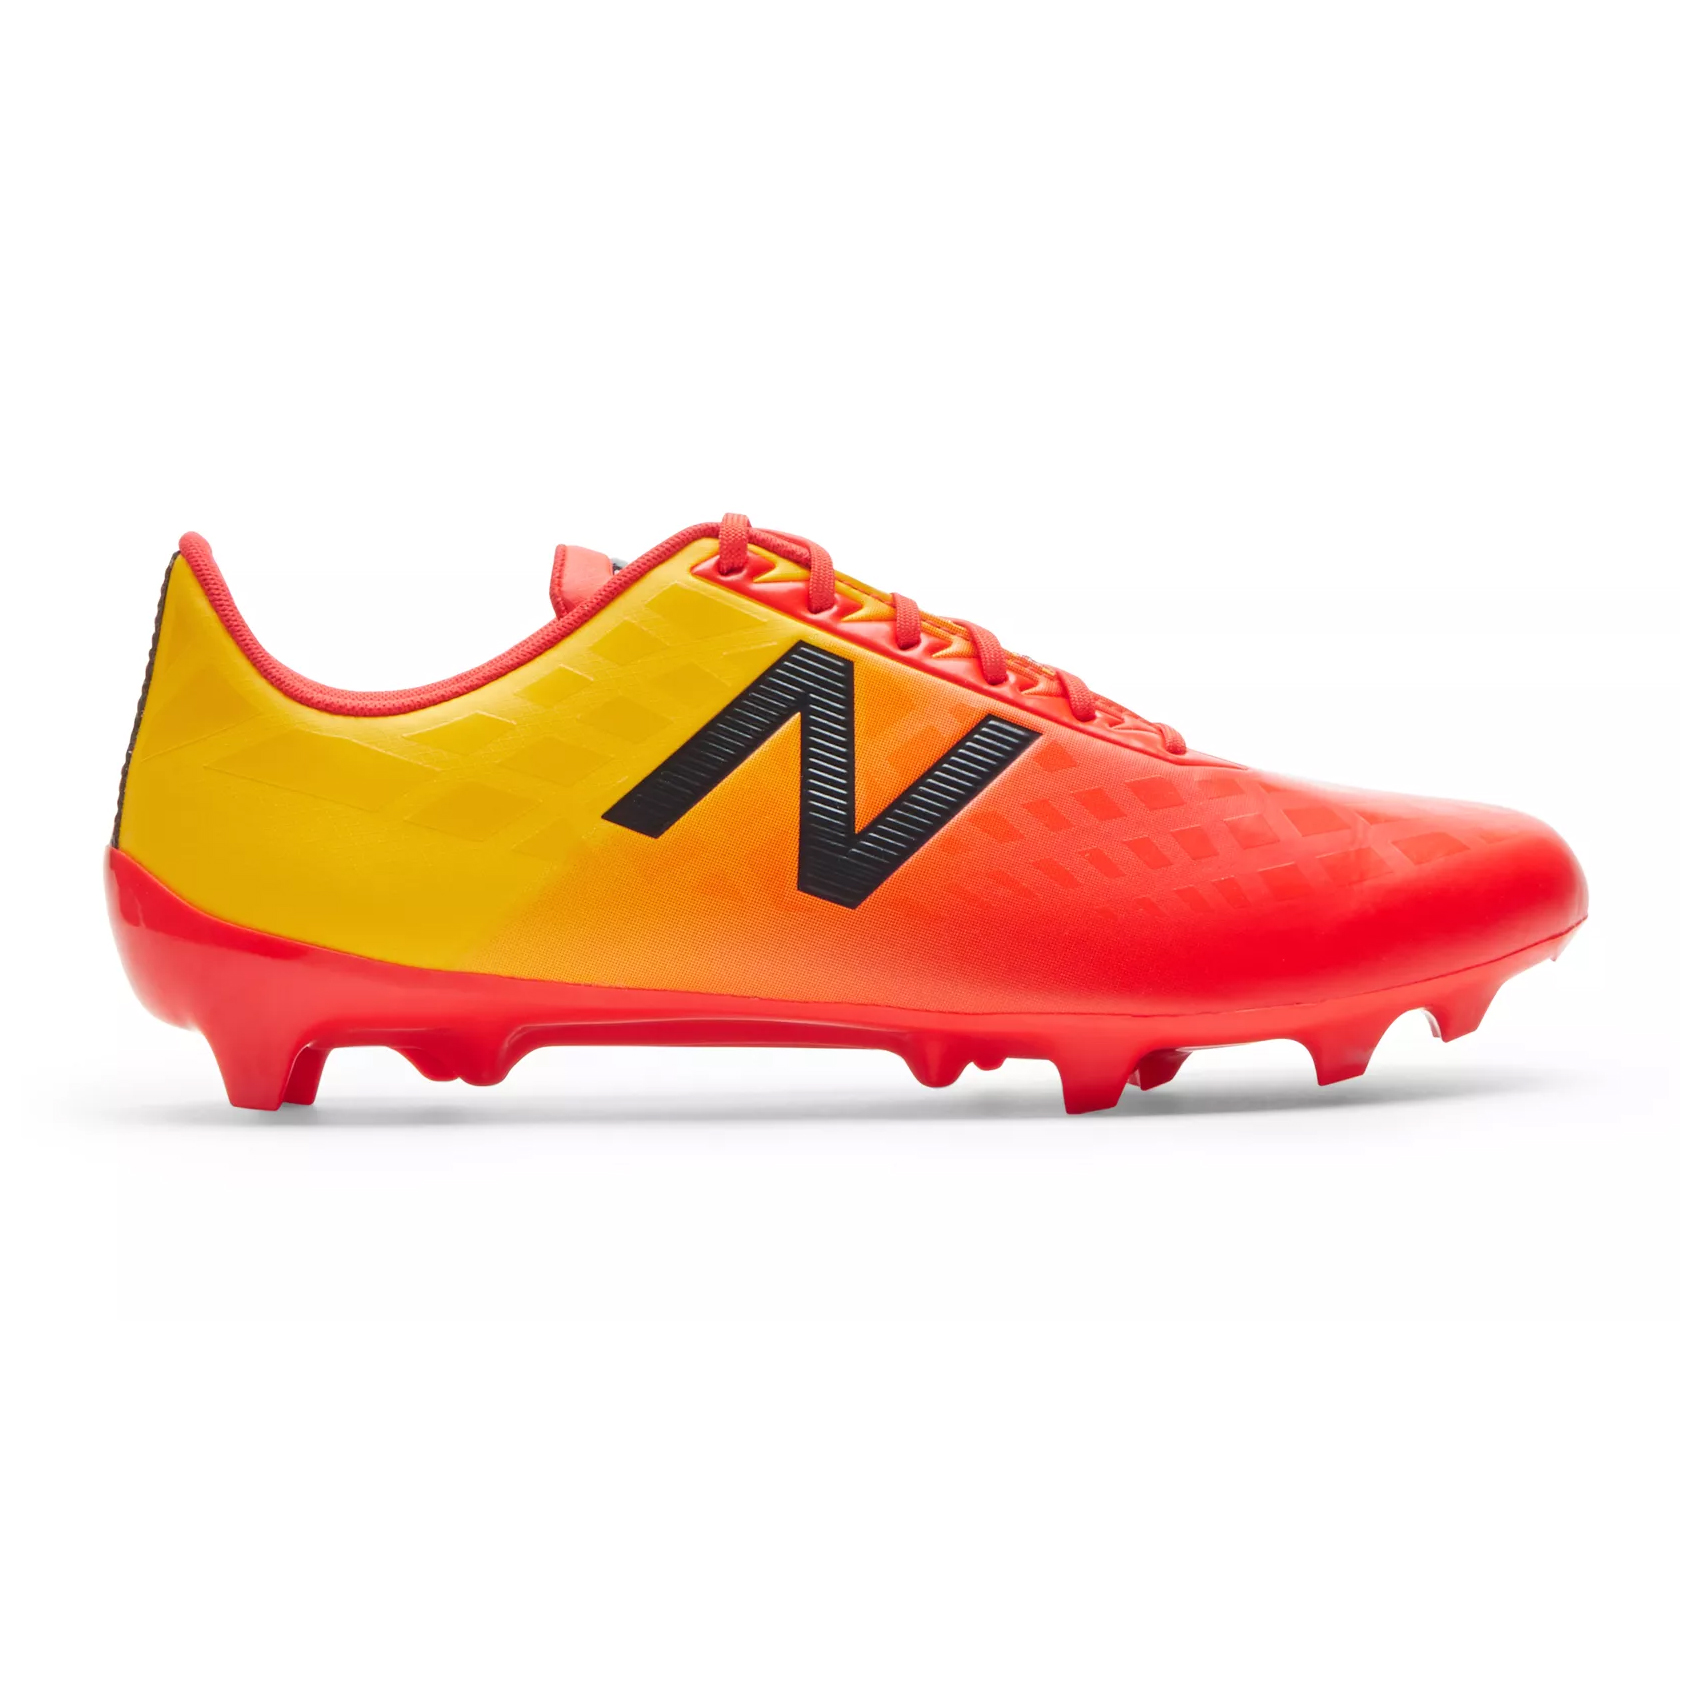 New Balance Men s Furon v4 Dispatch FG Football Boot- Flame  bc1d4be88736c